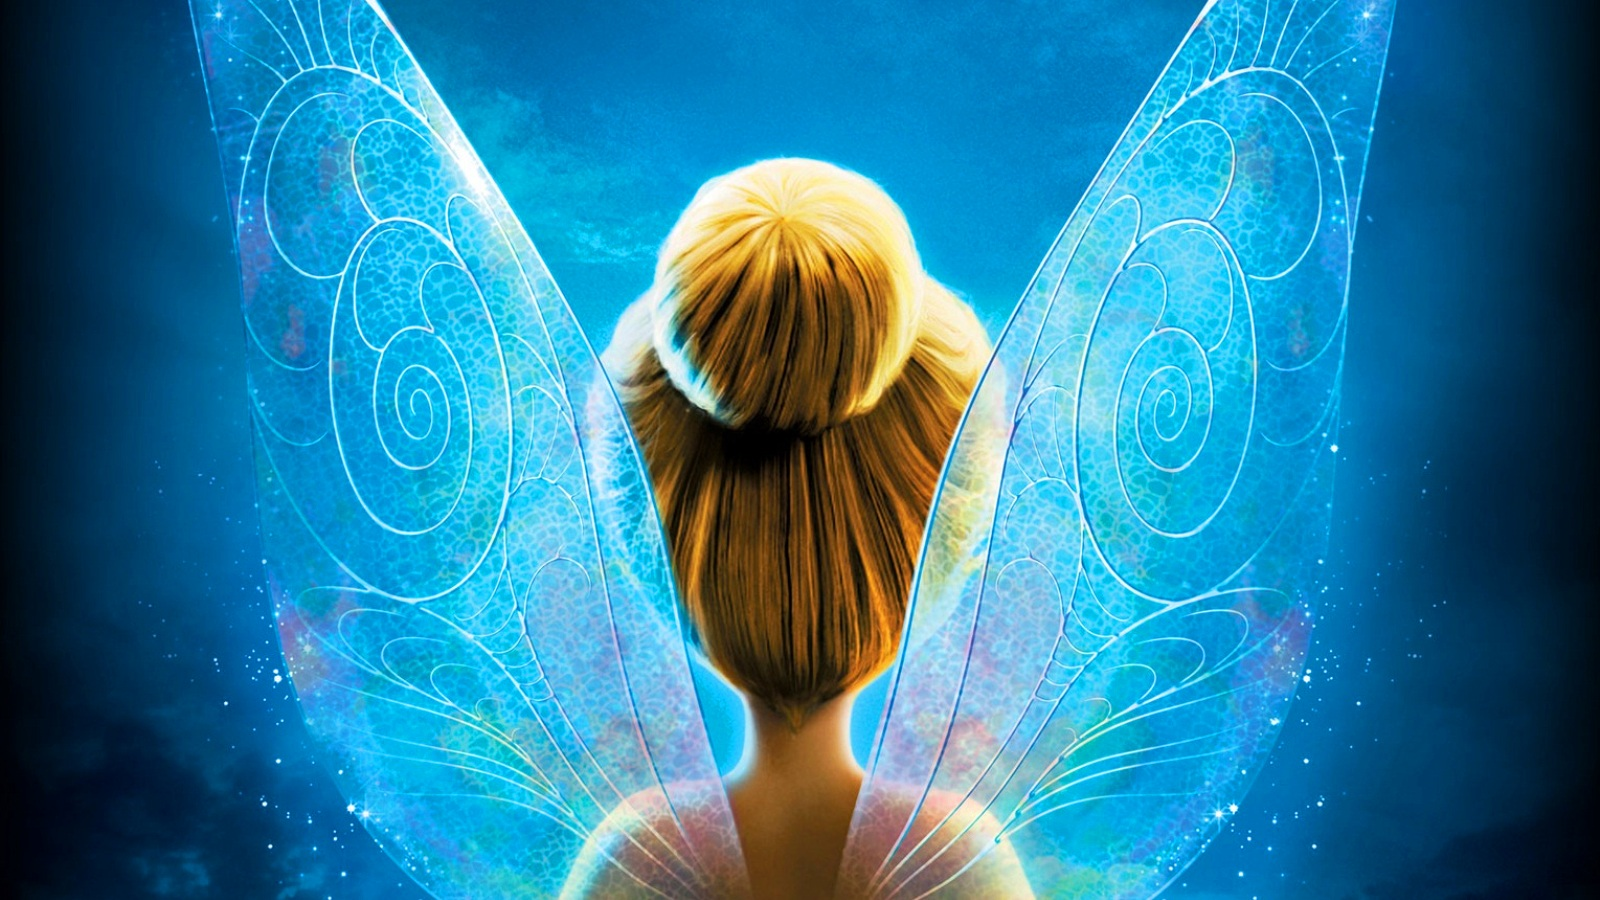 Tinkerbell the secret of the wings wallpaper